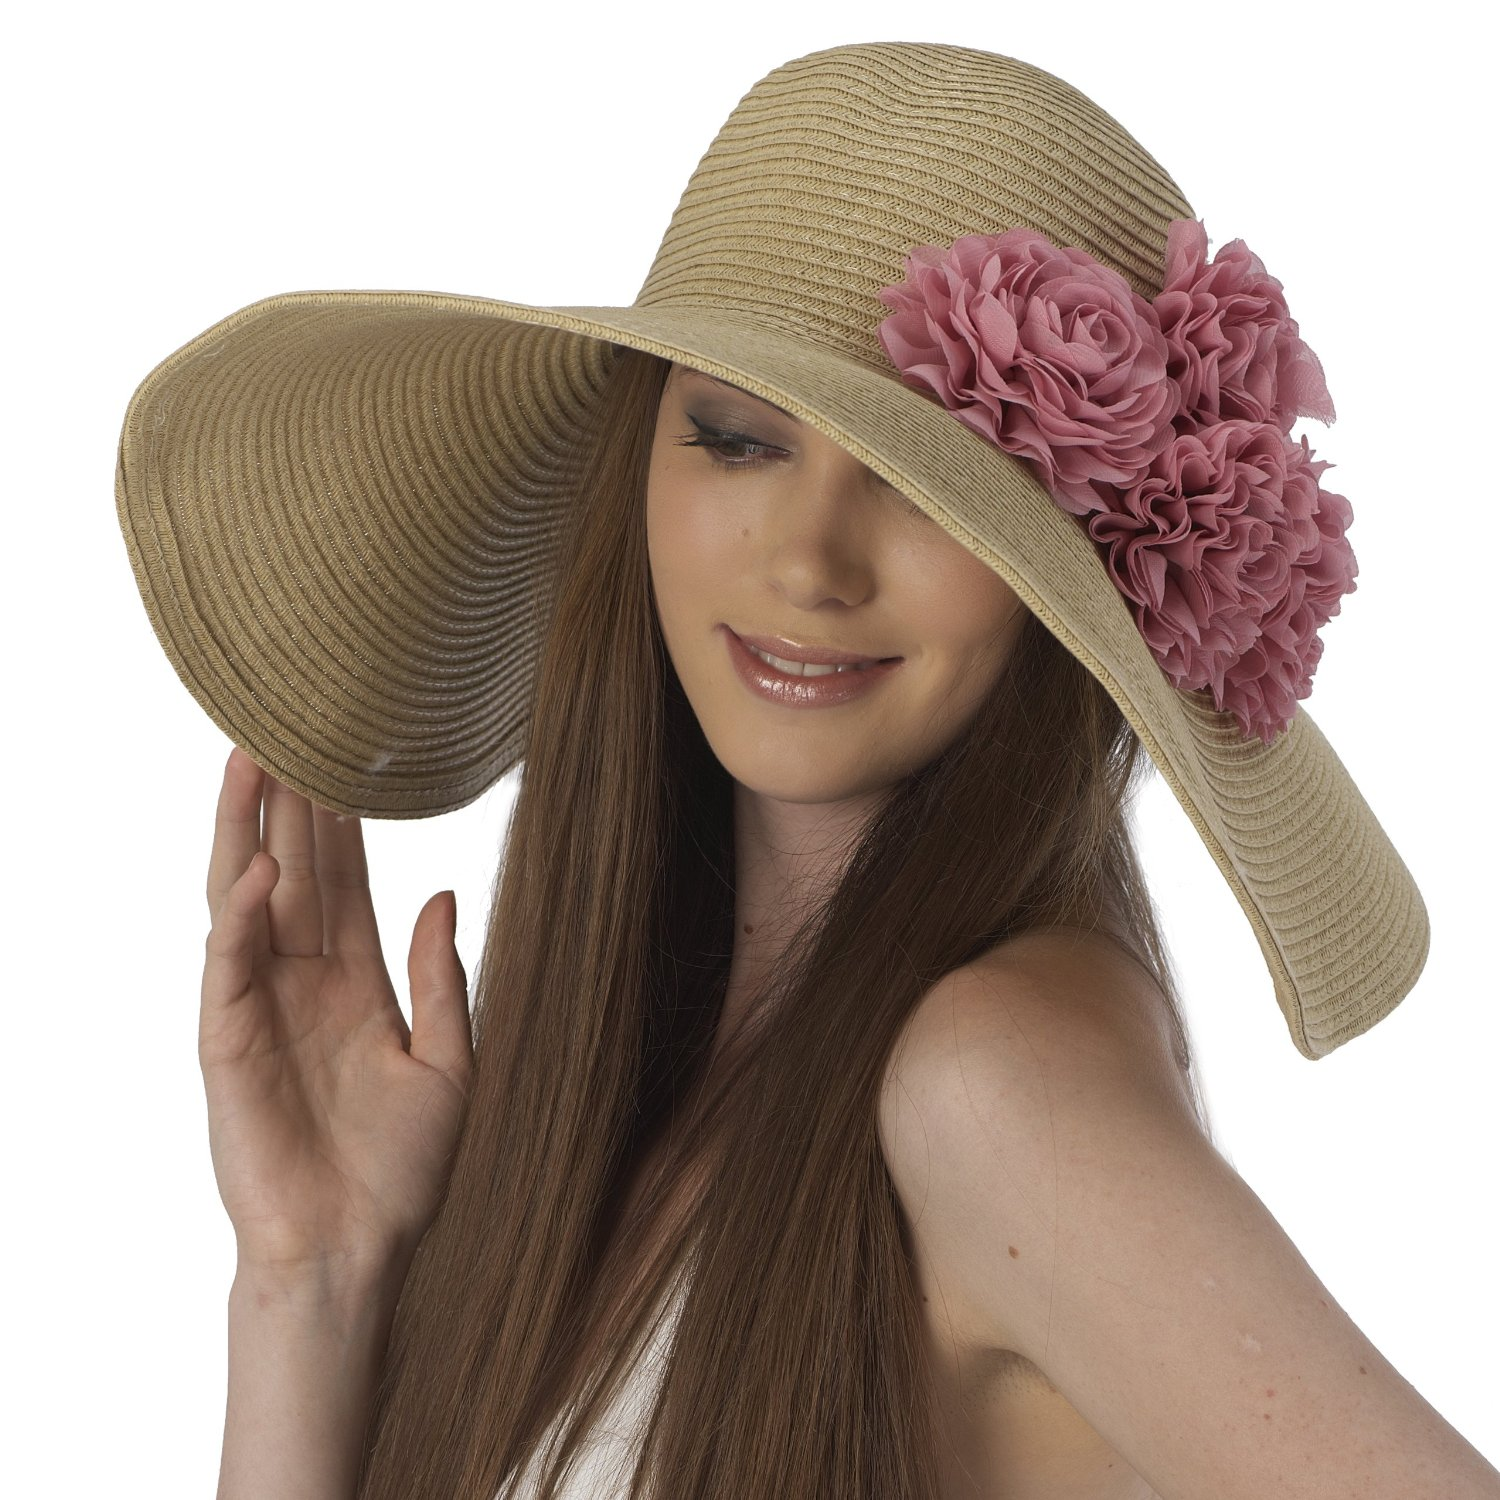 3c38d32a81880 Awesome Fashion 2012  Awesome Summer Hats for 2012